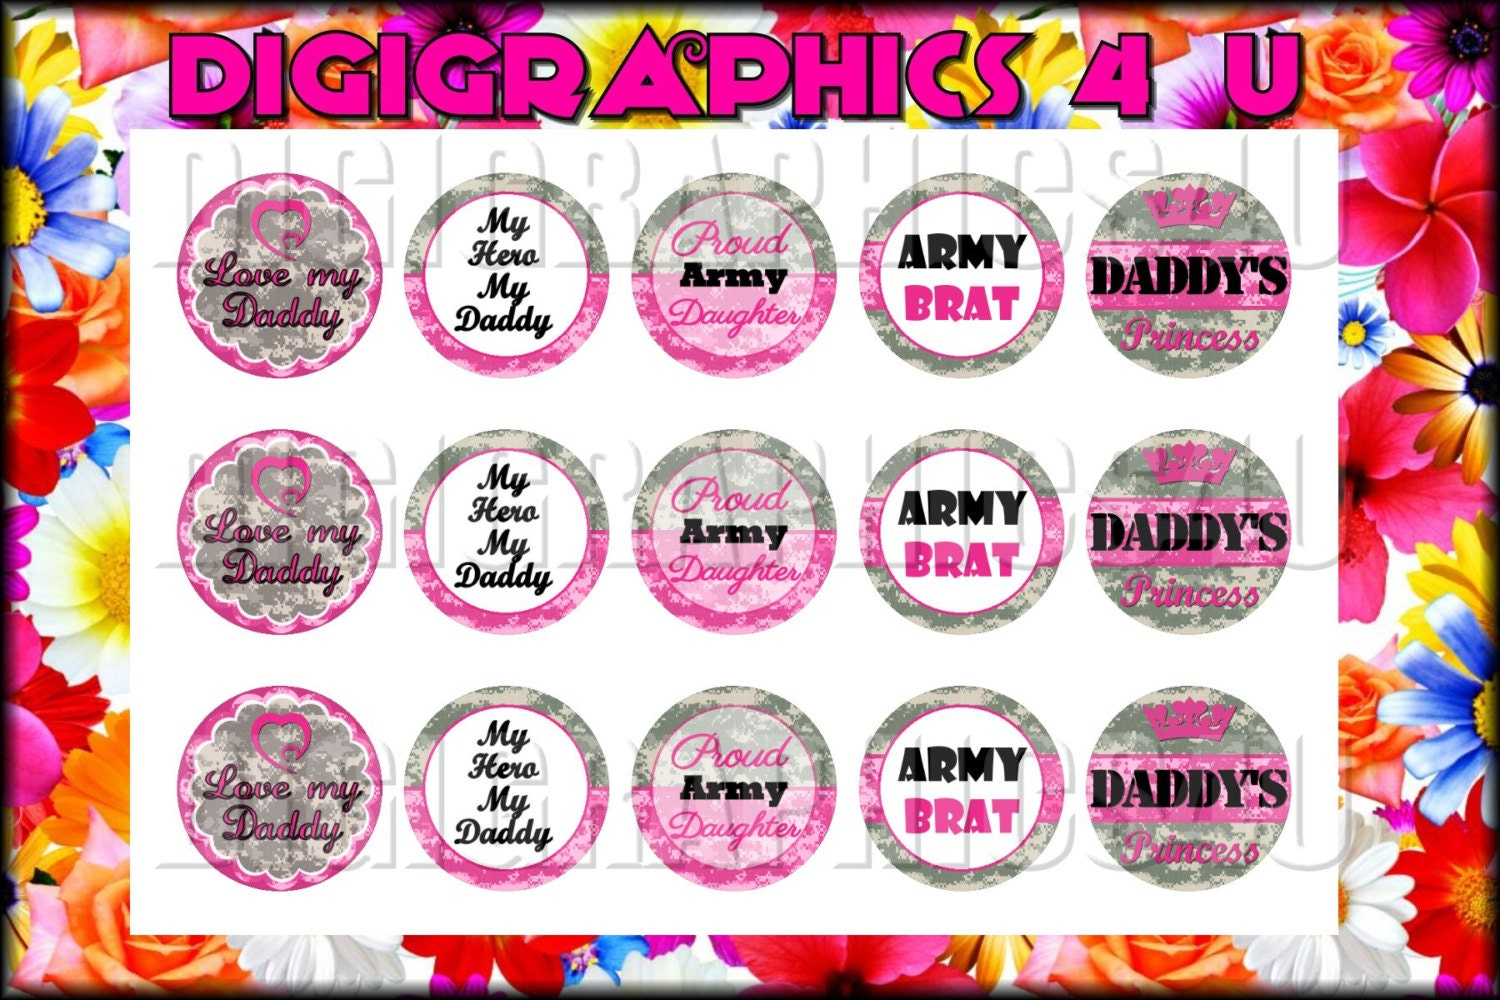 For hairbows bracelets jewelry keychains cupcake toppers and more